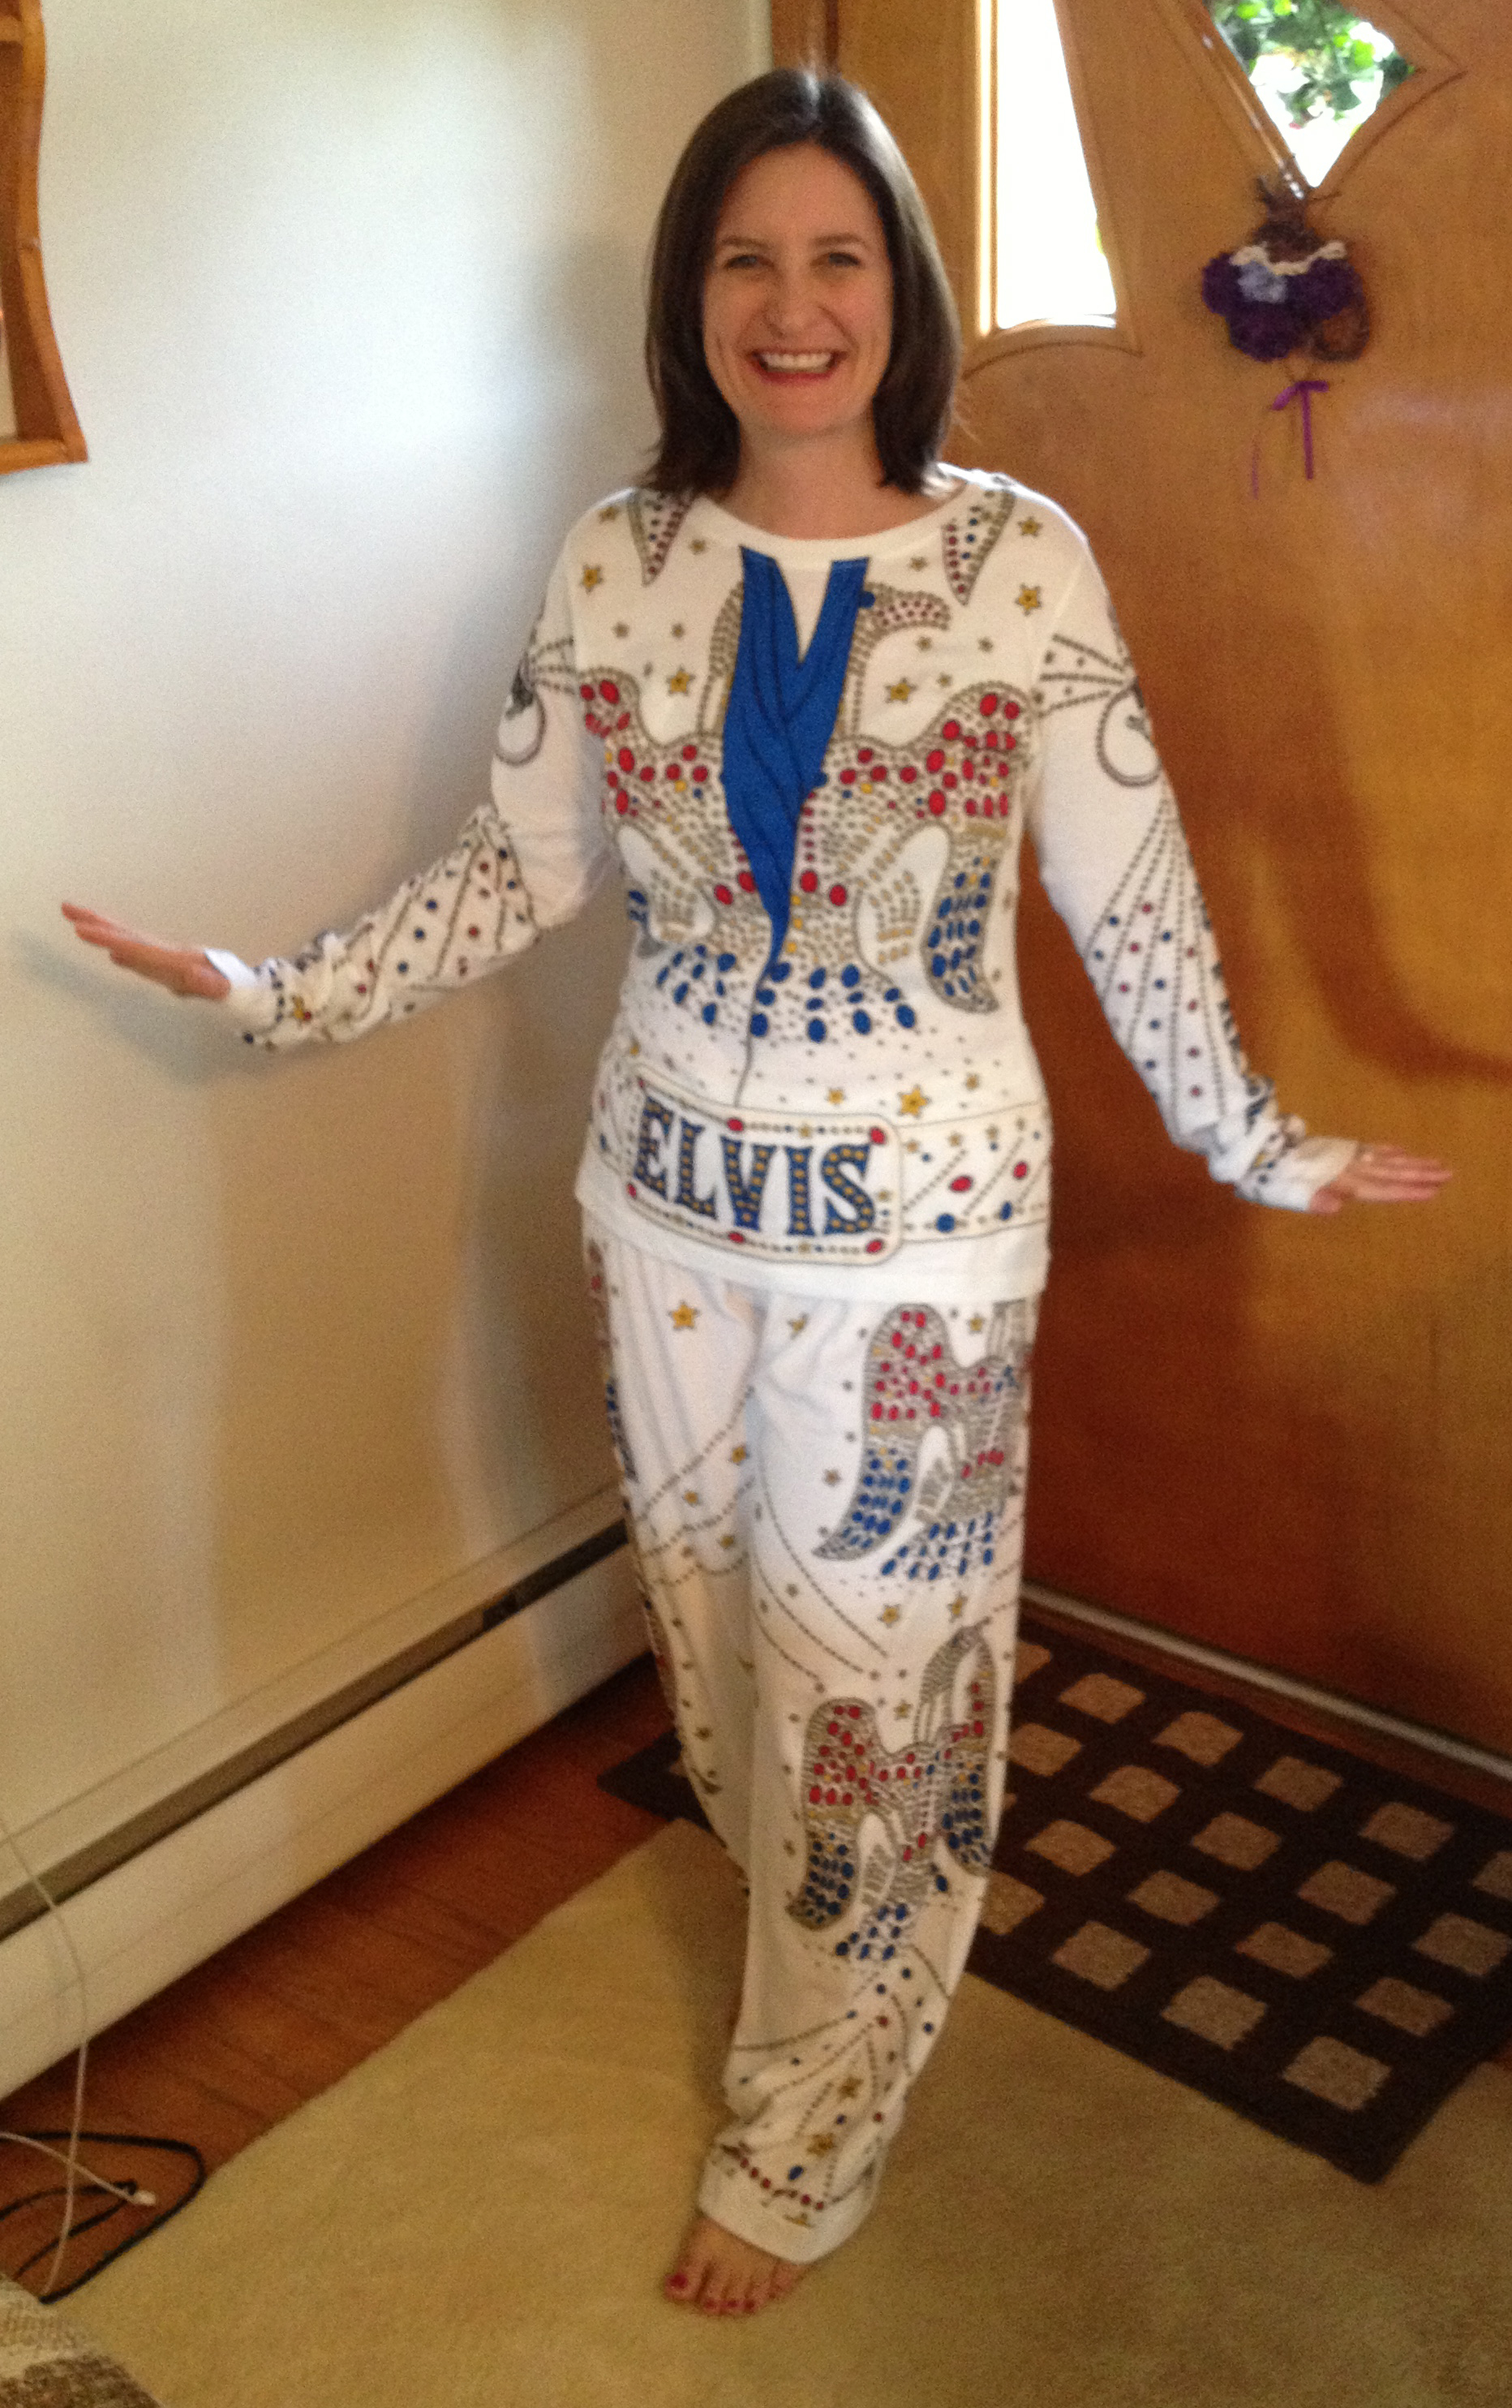 Elvis suit - ready for the South Carolina Elvis Festival